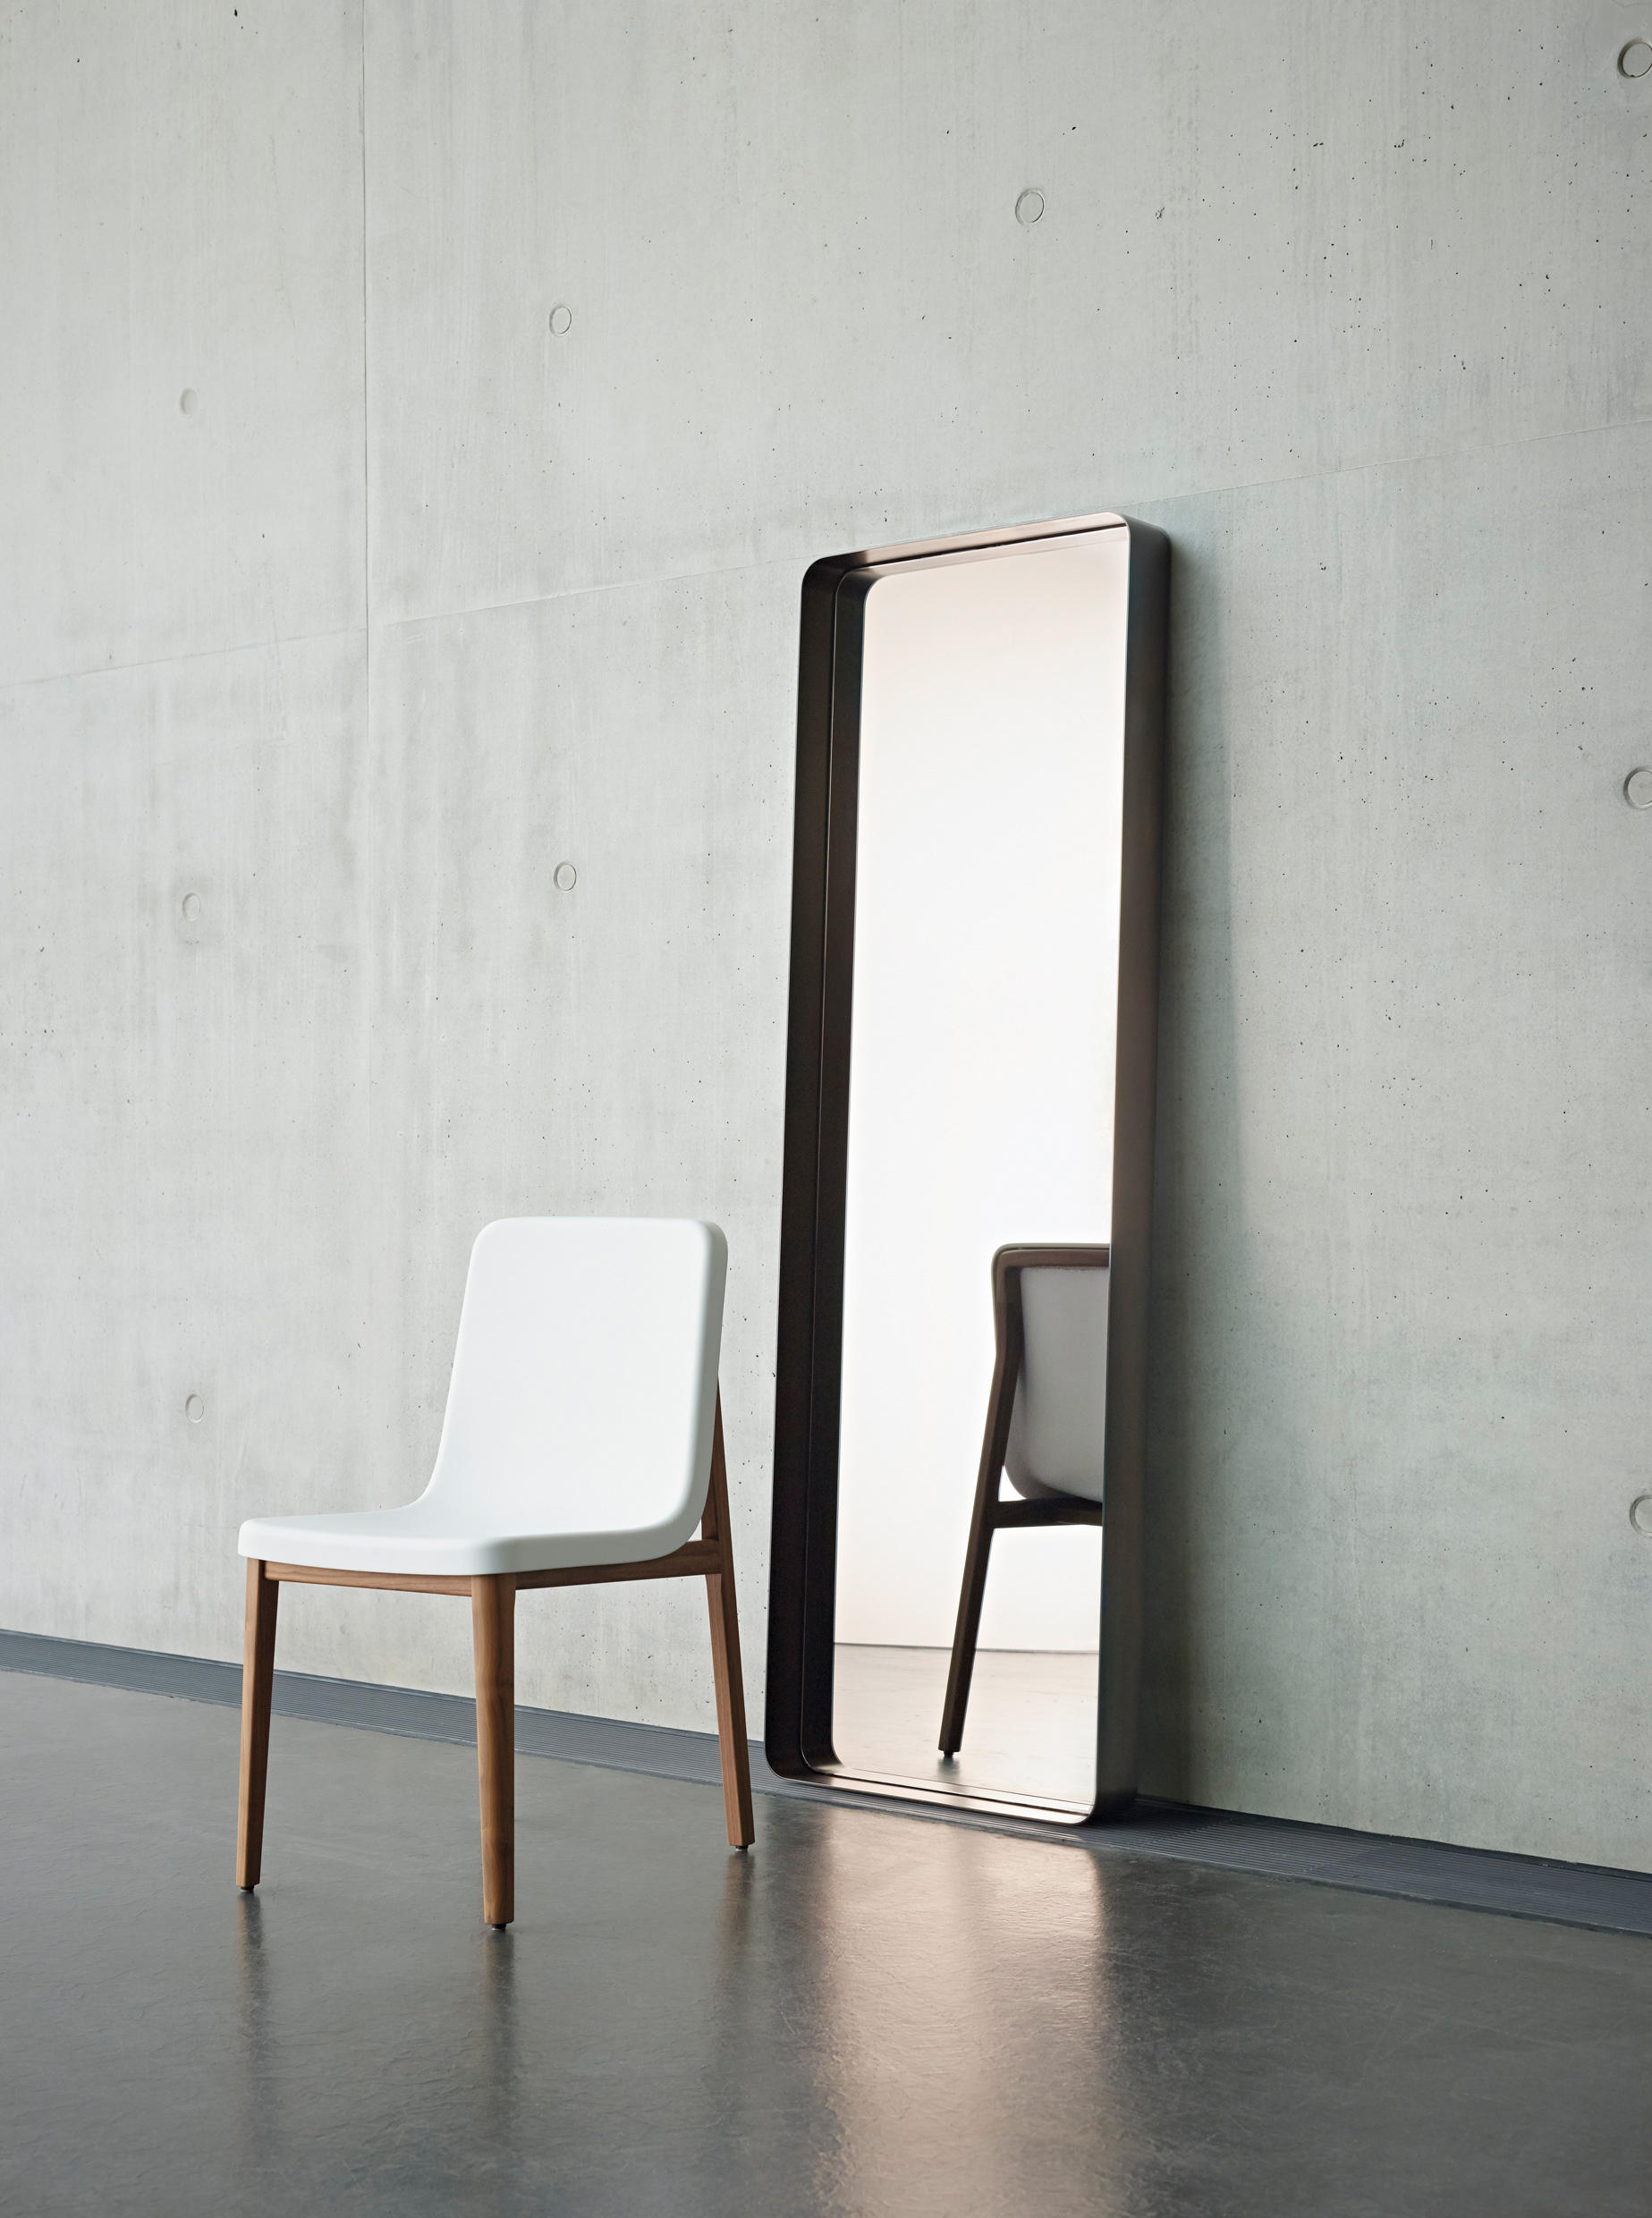 Spiegel 180x60 Cypris Mirror - Mirrors From Classicon | Architonic